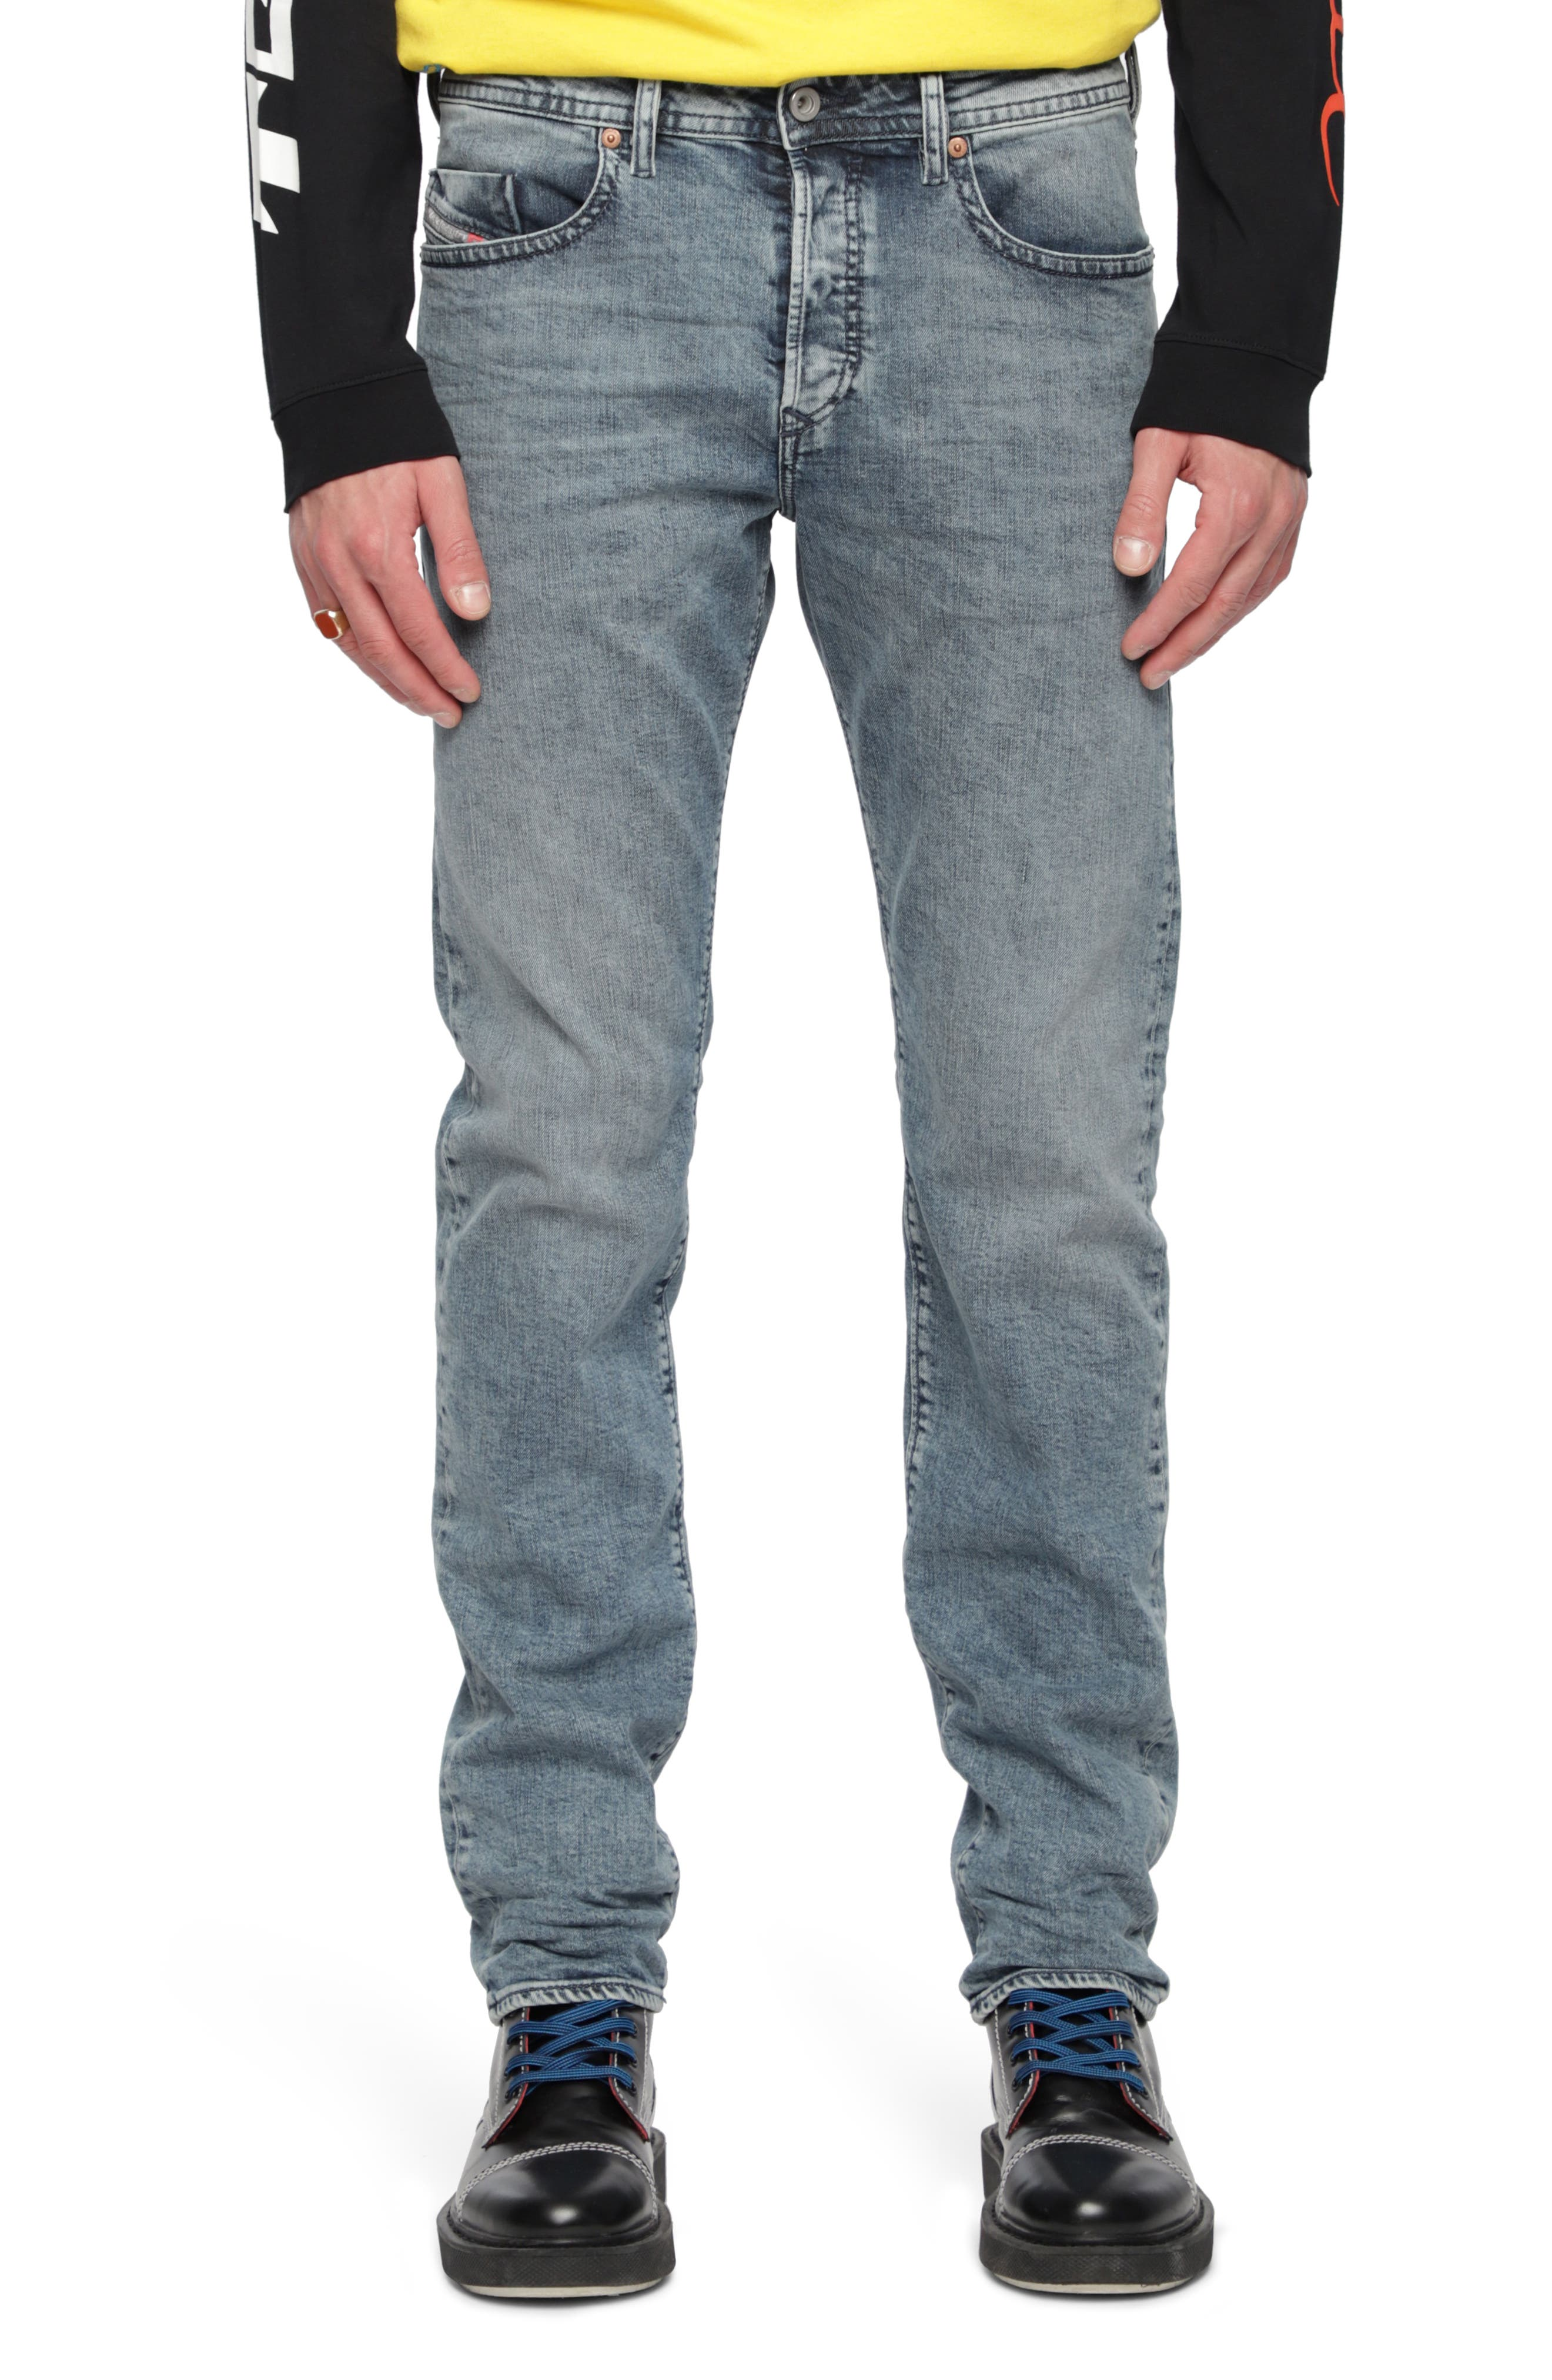 Buster Slim Fit Straight Leg Jeans,                             Main thumbnail 1, color,                             084Ux